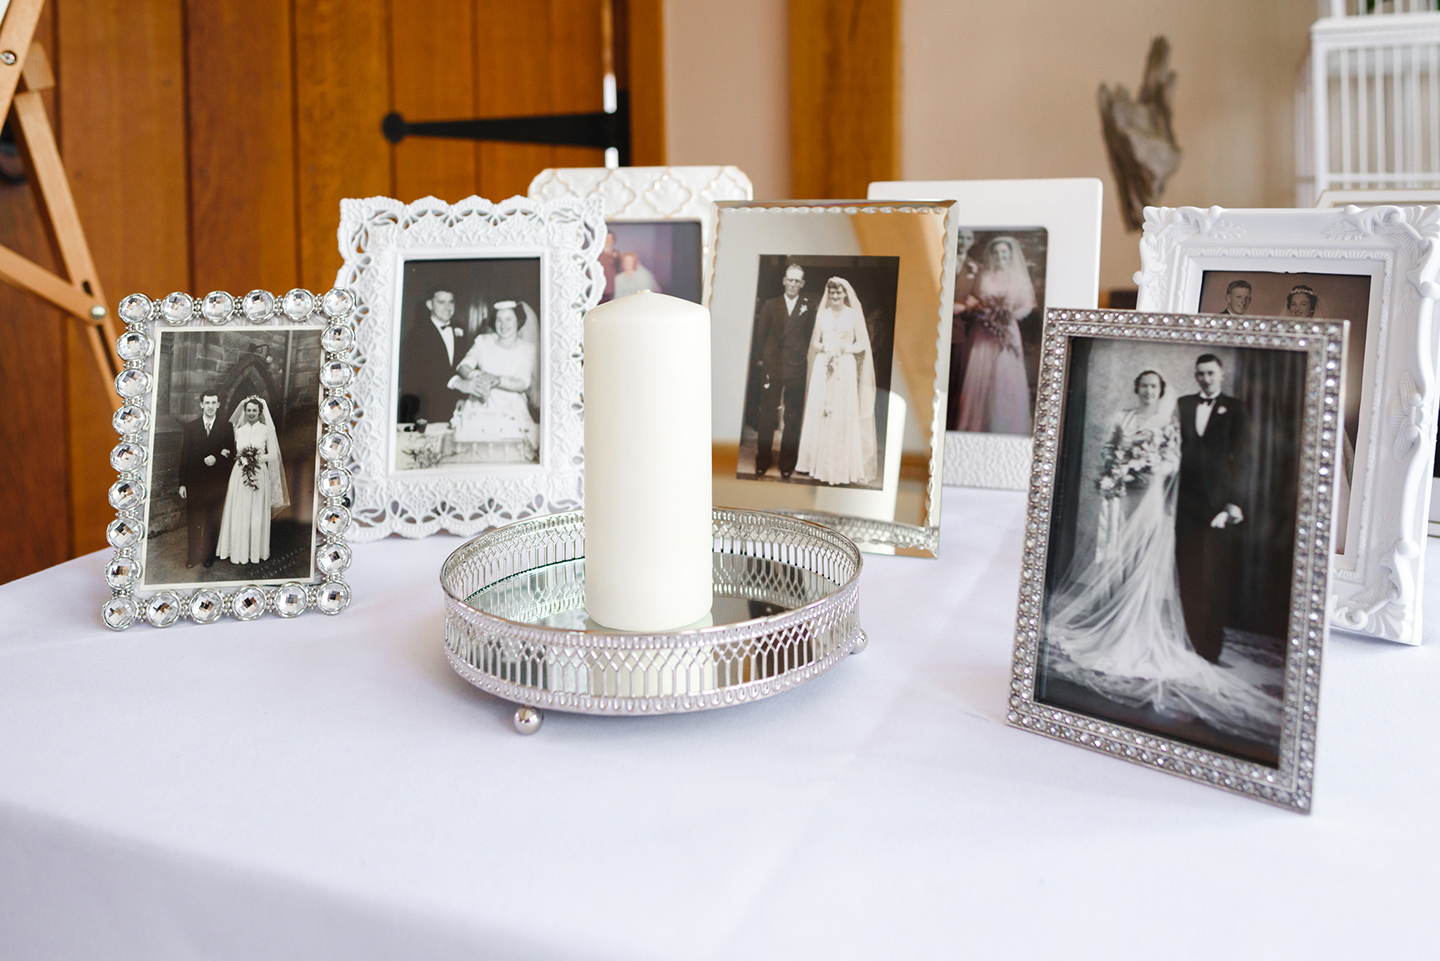 Family photos in white frames were placed on a table in the wedding venue to create a personal touch